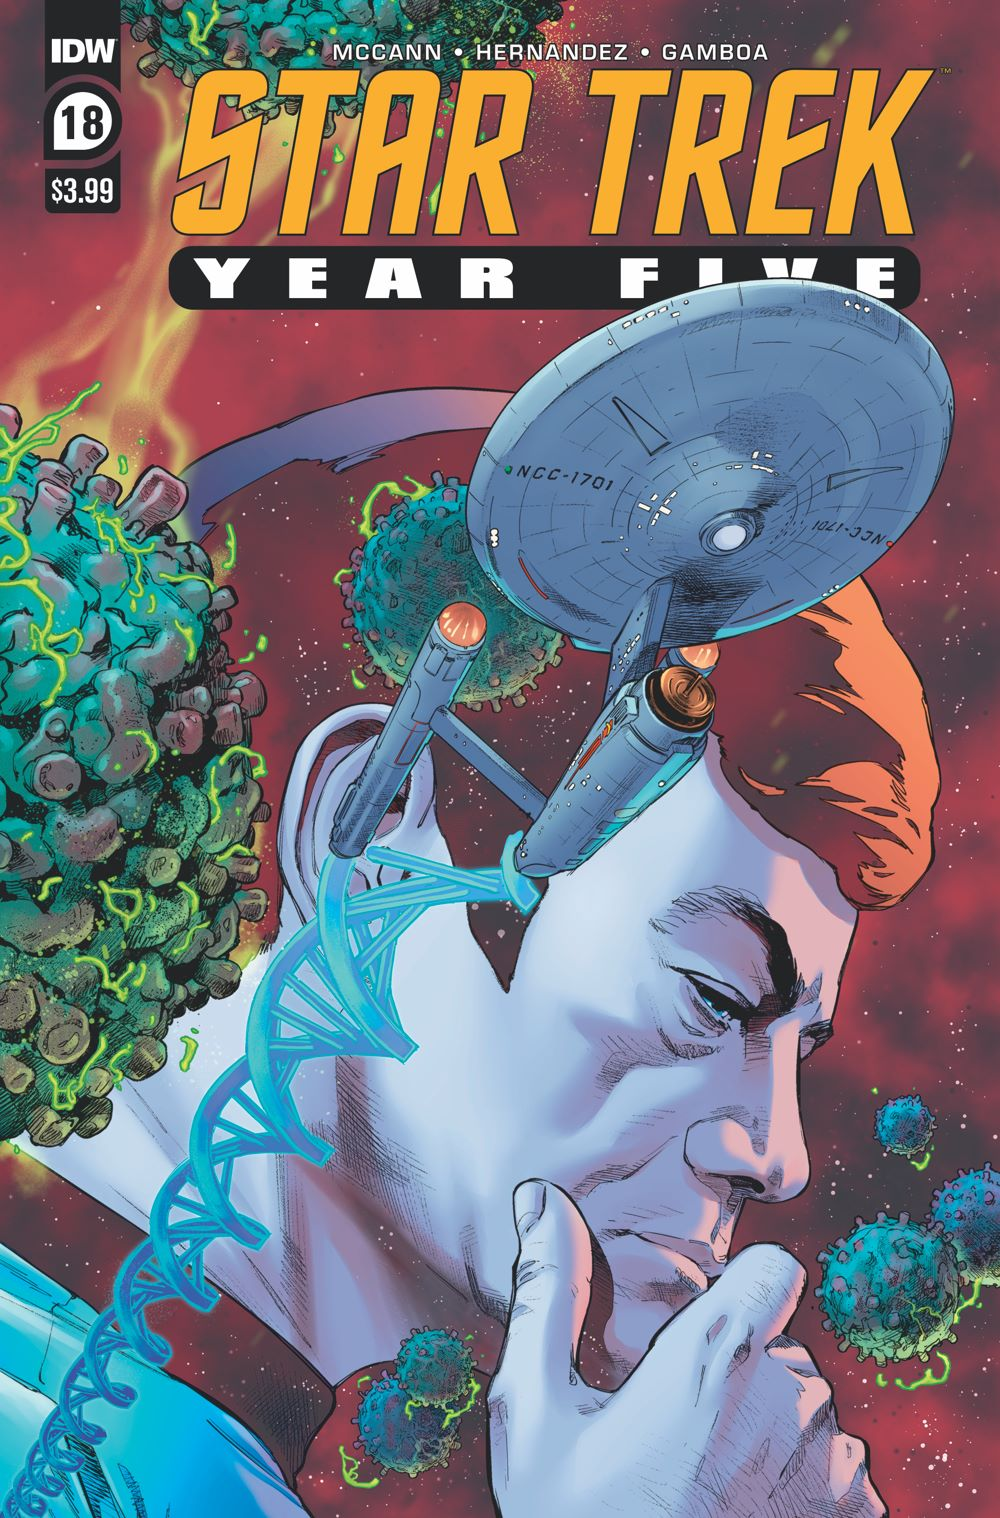 ST_YearFive18-cover ComicList Previews: STAR TREK YEAR FIVE #18